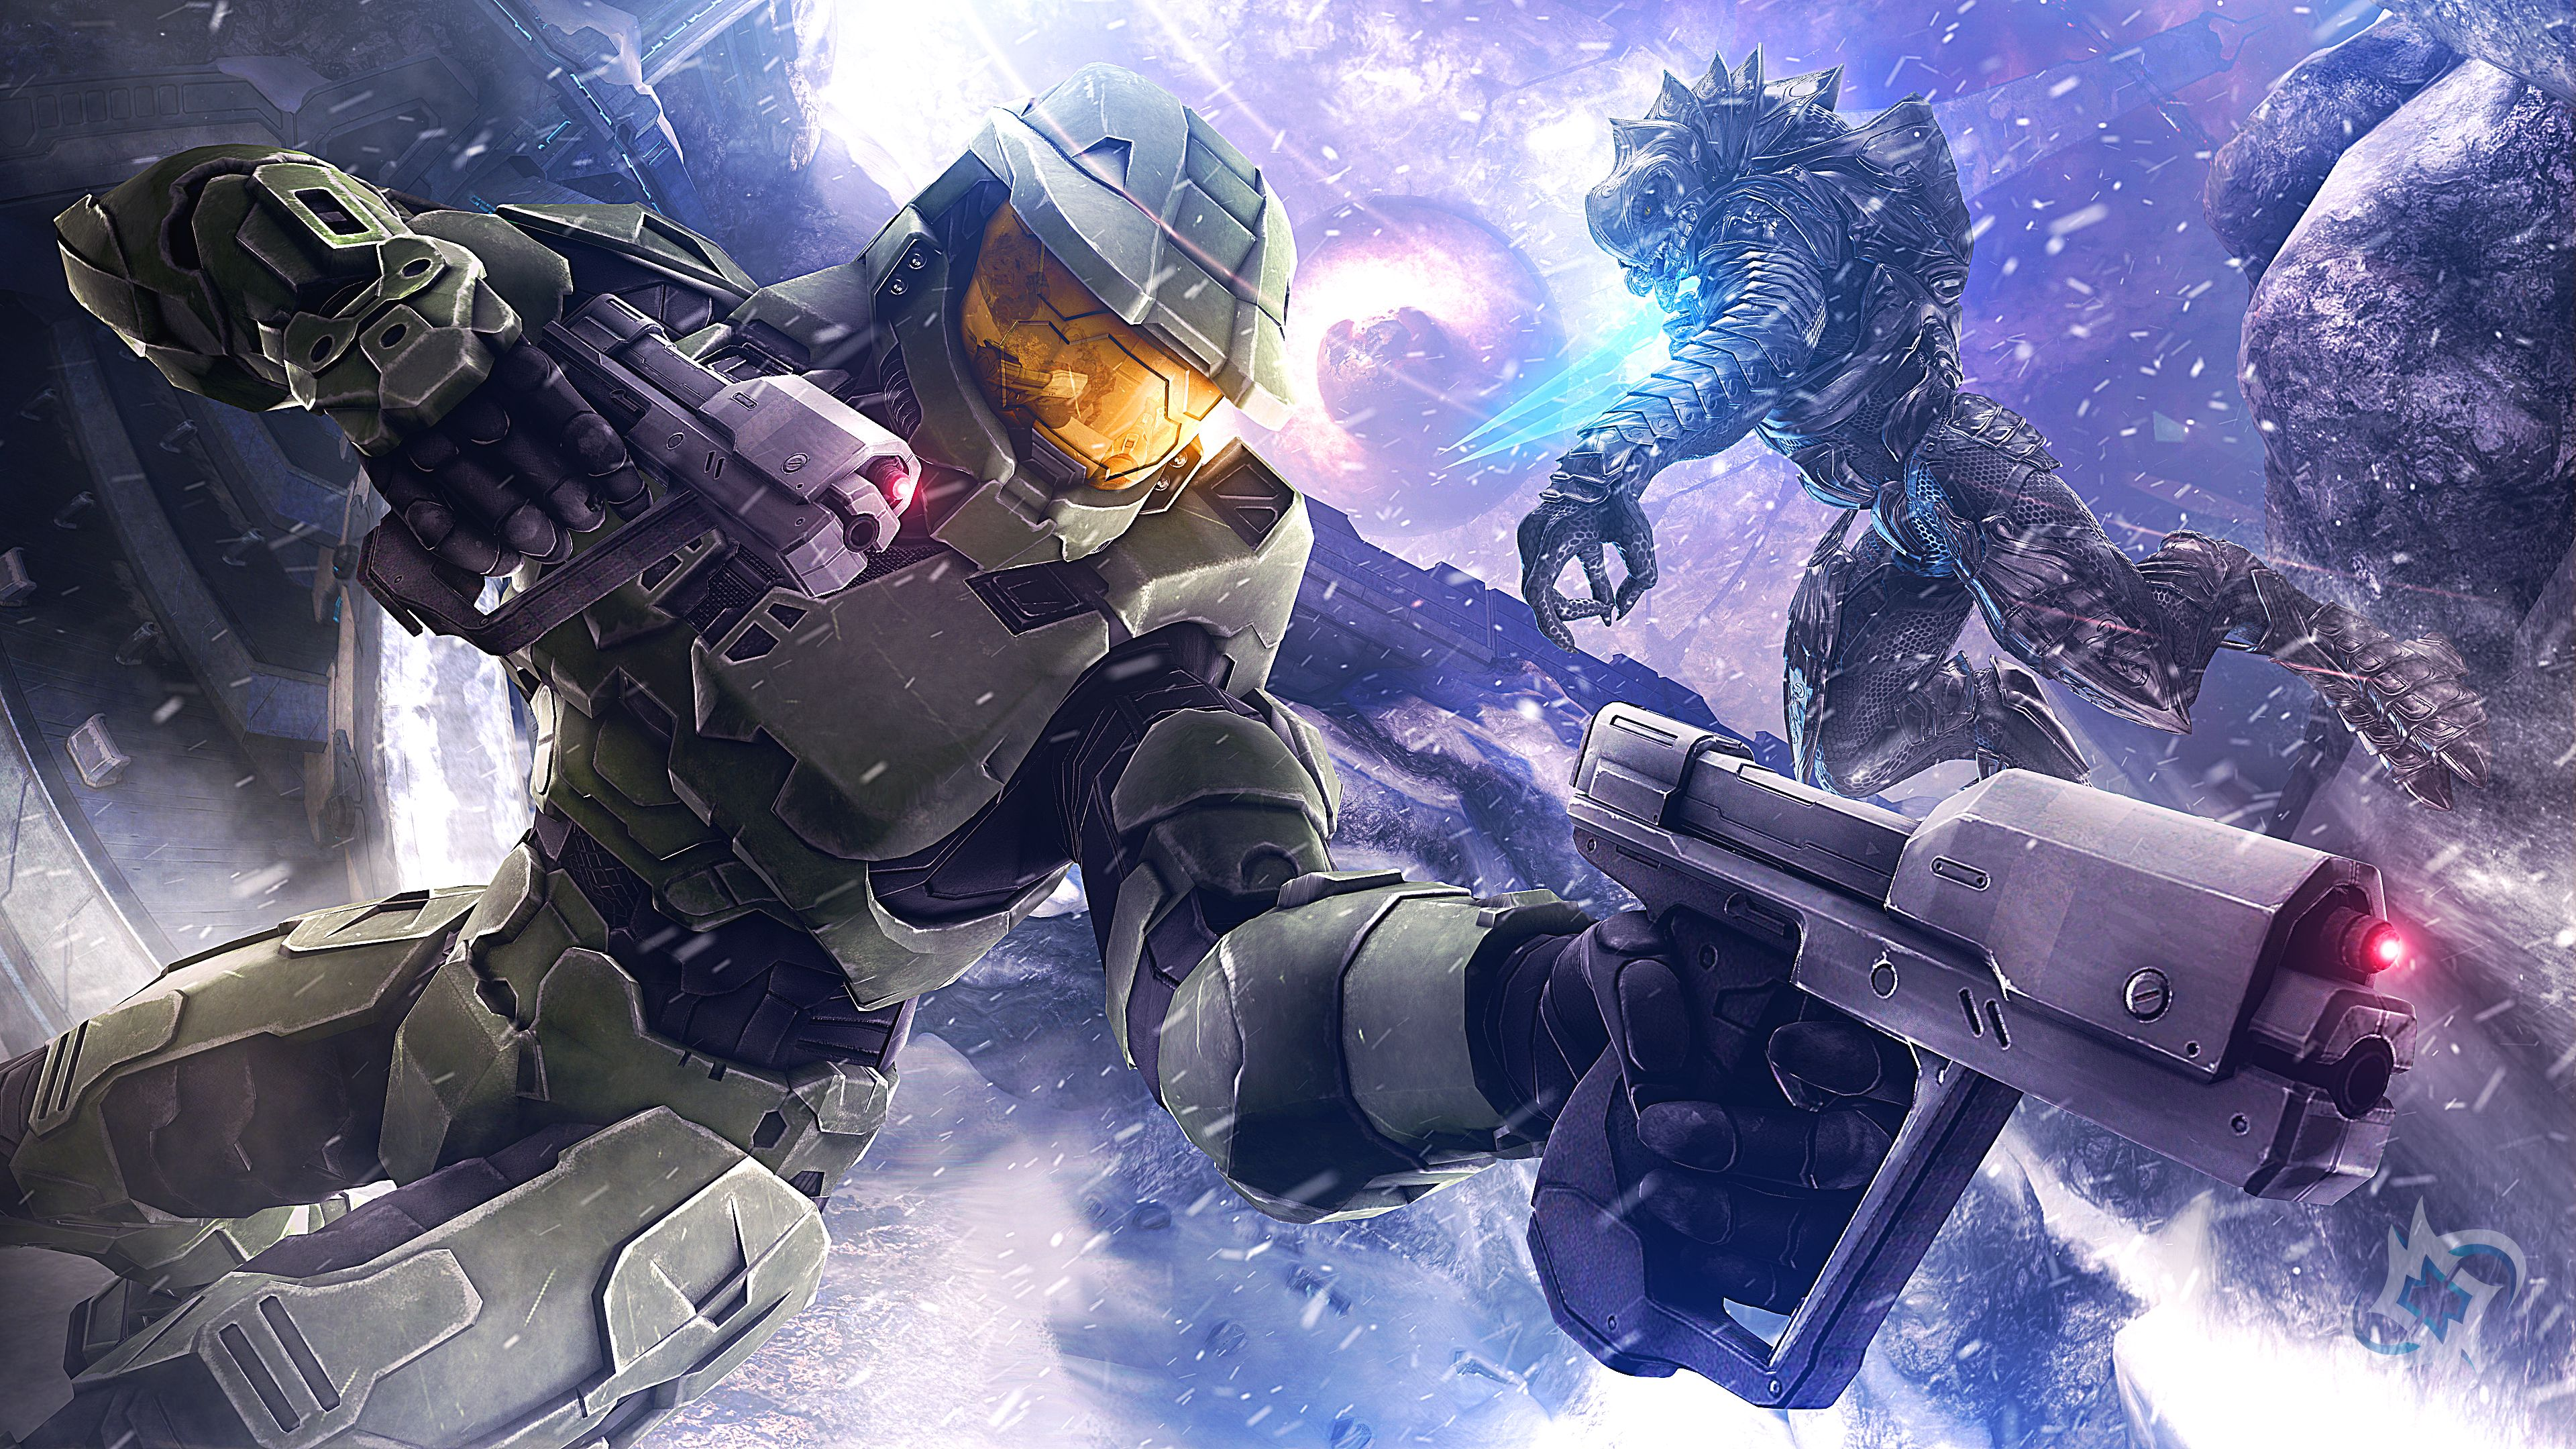 Chief Halo Master Halo Video Game Halo Game Master Chief